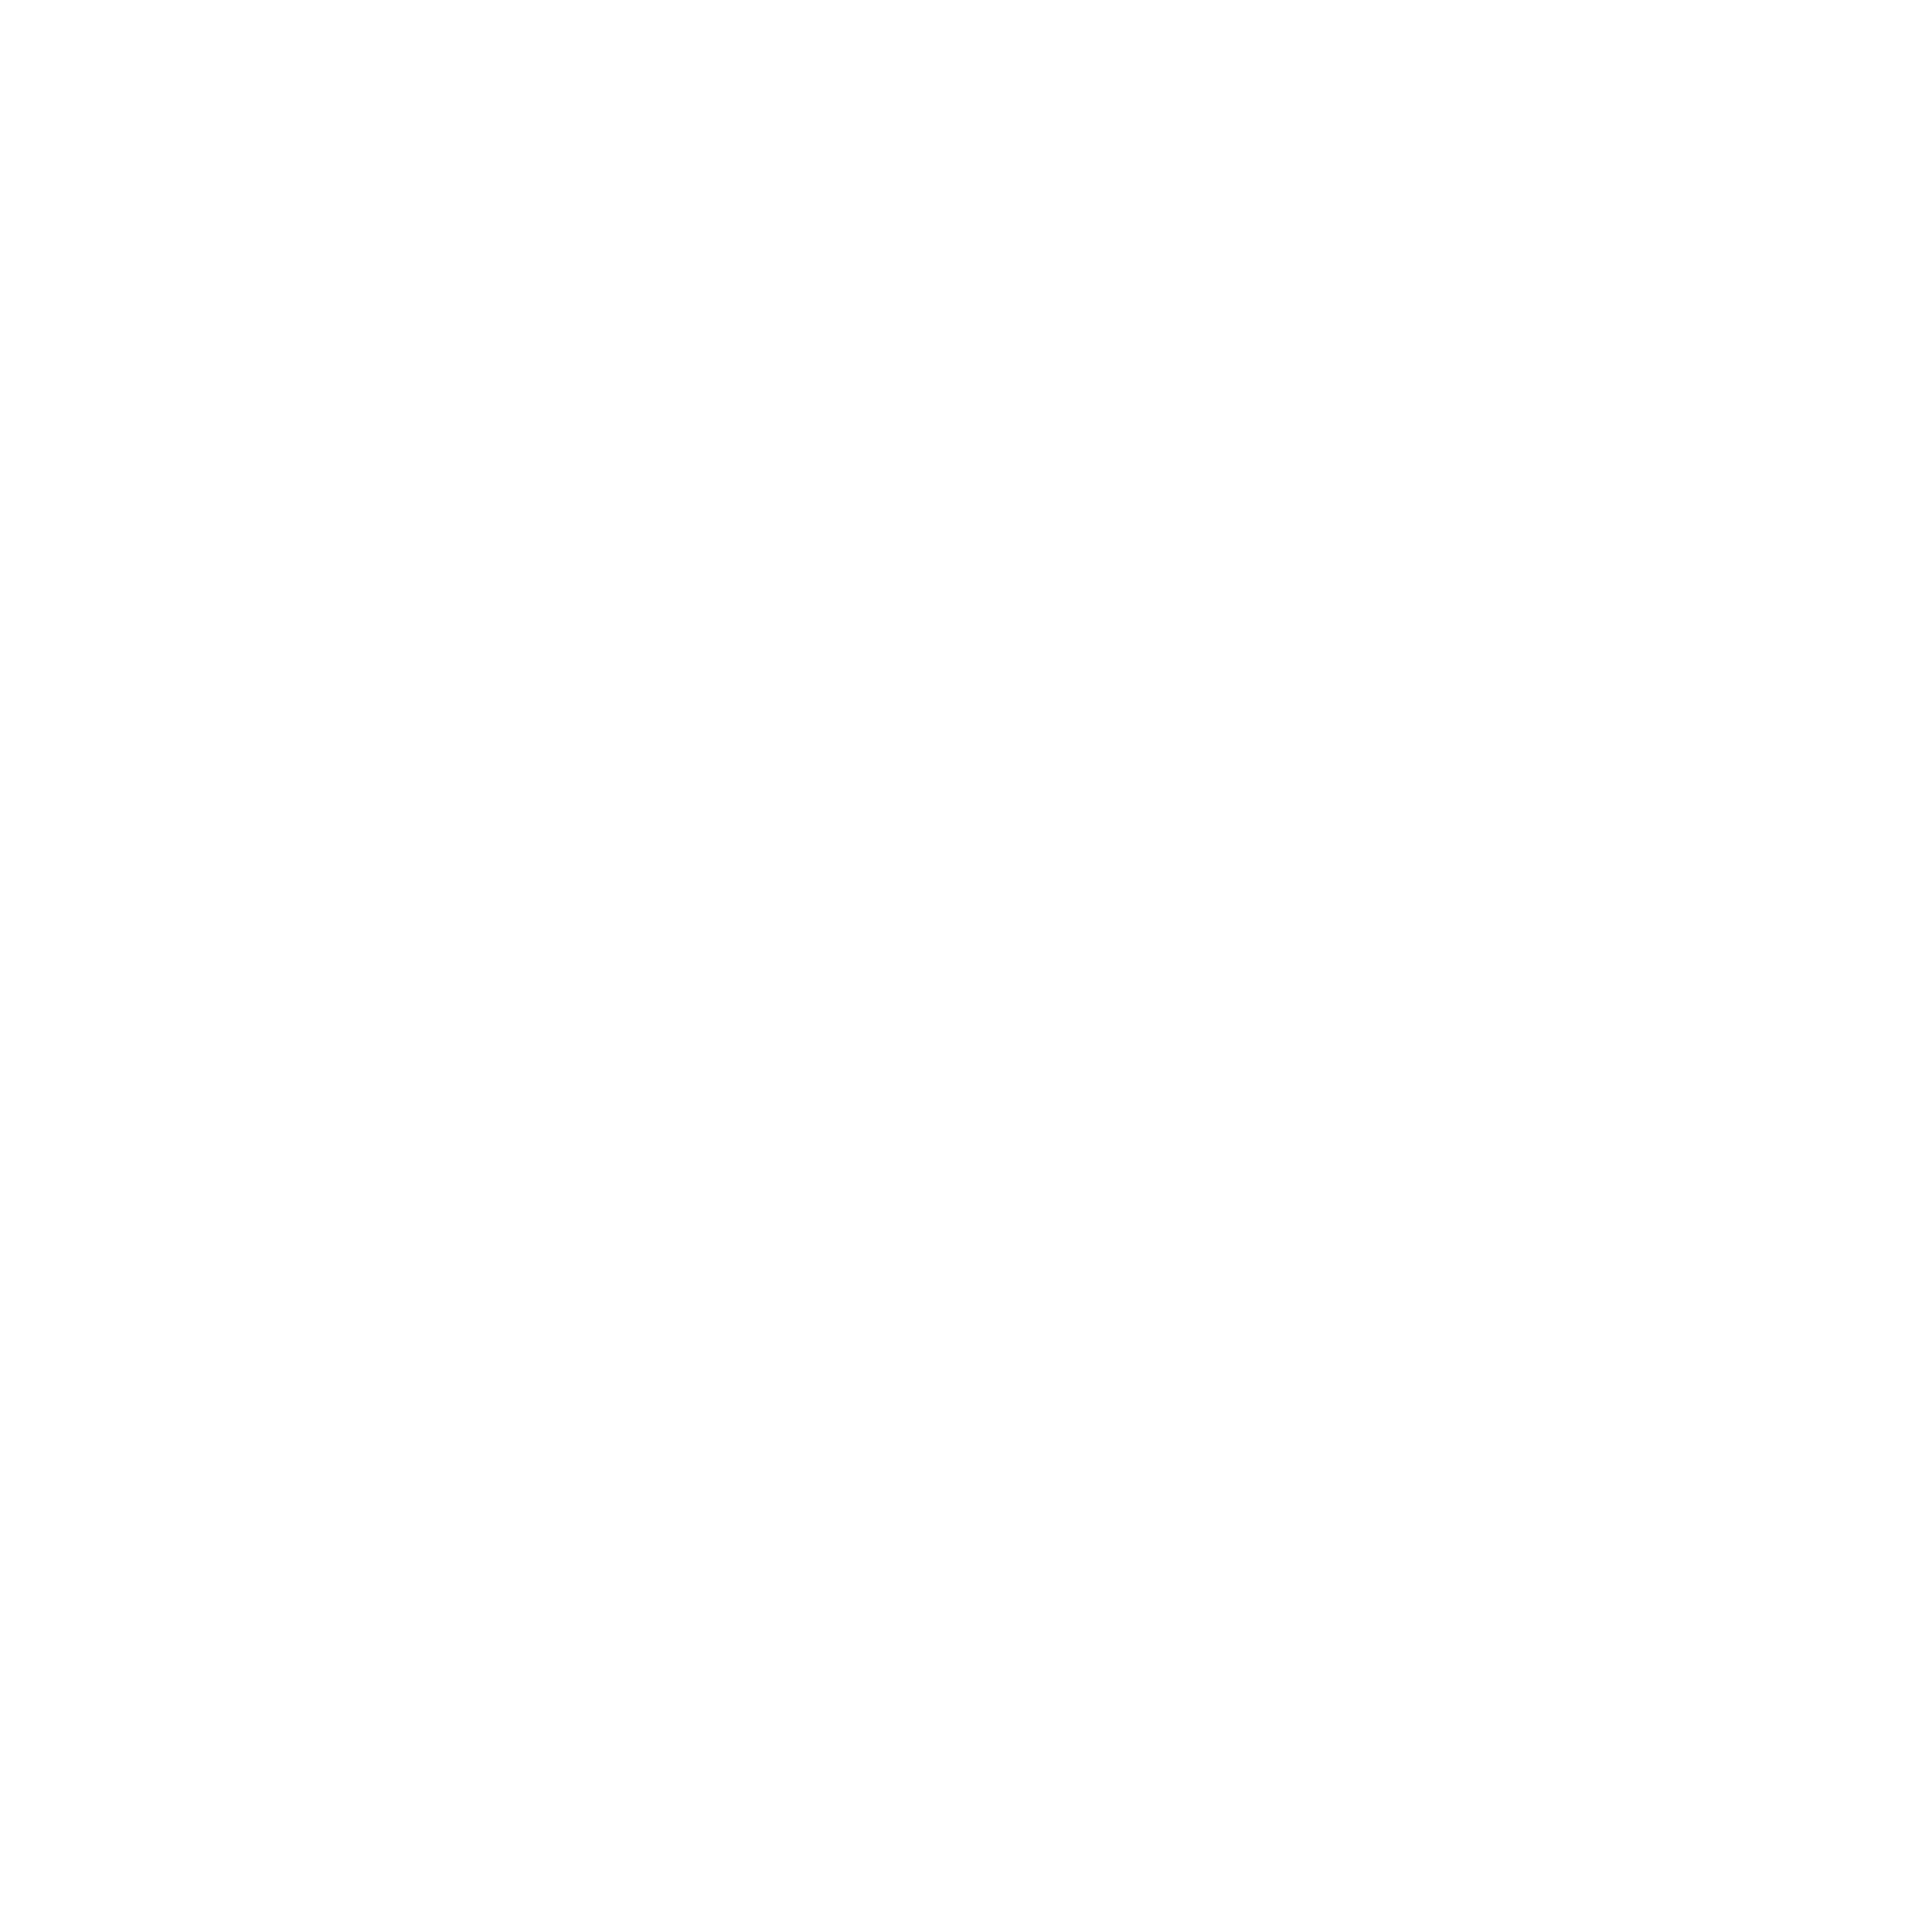 Snow flake png. Snowflakes images free download